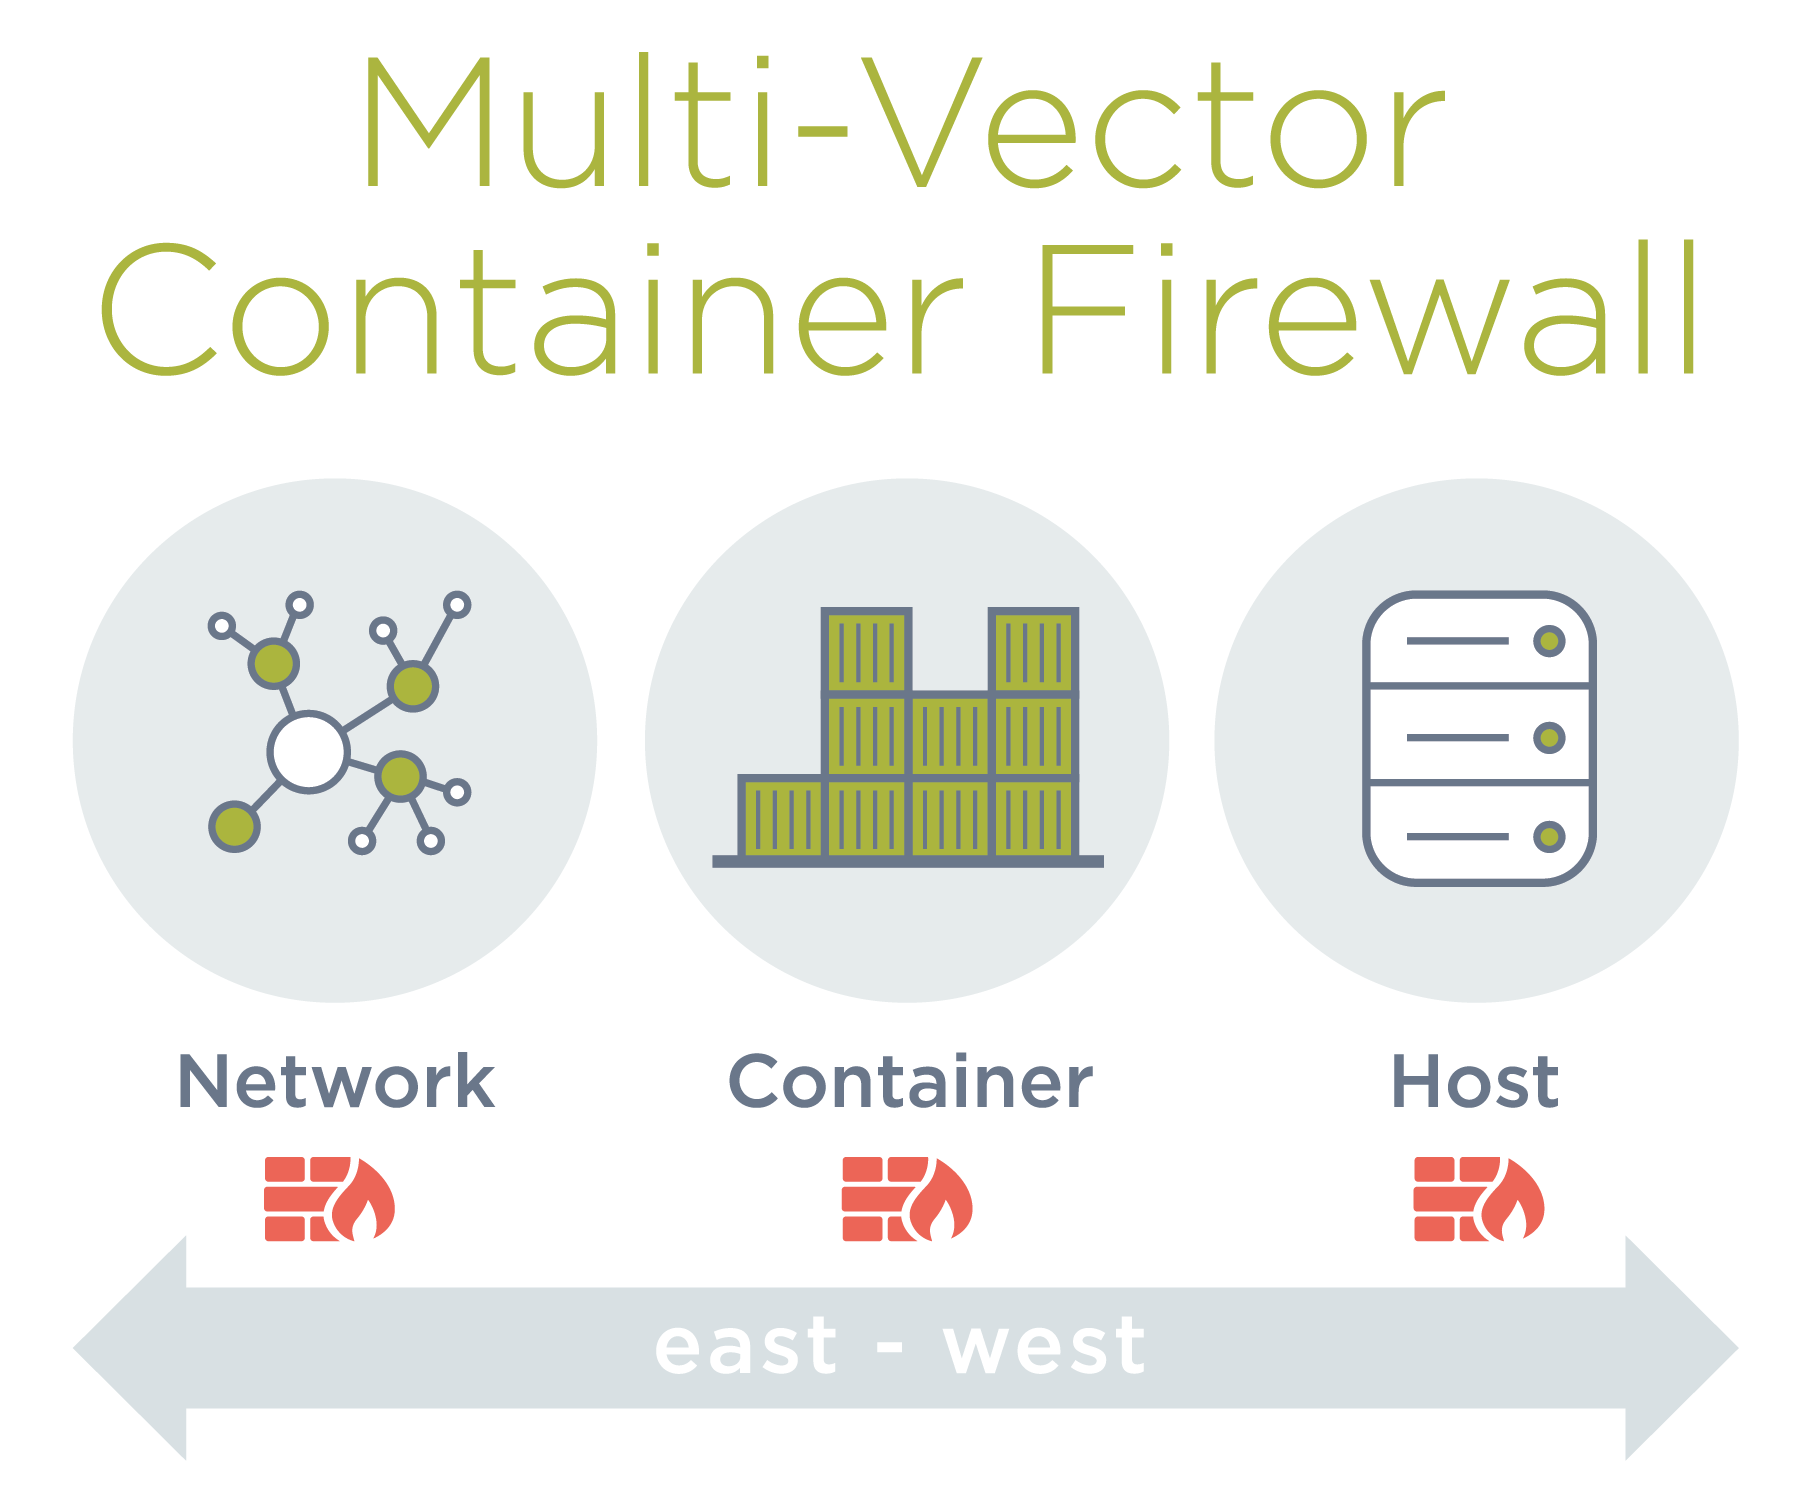 NeuVector Container Firewall